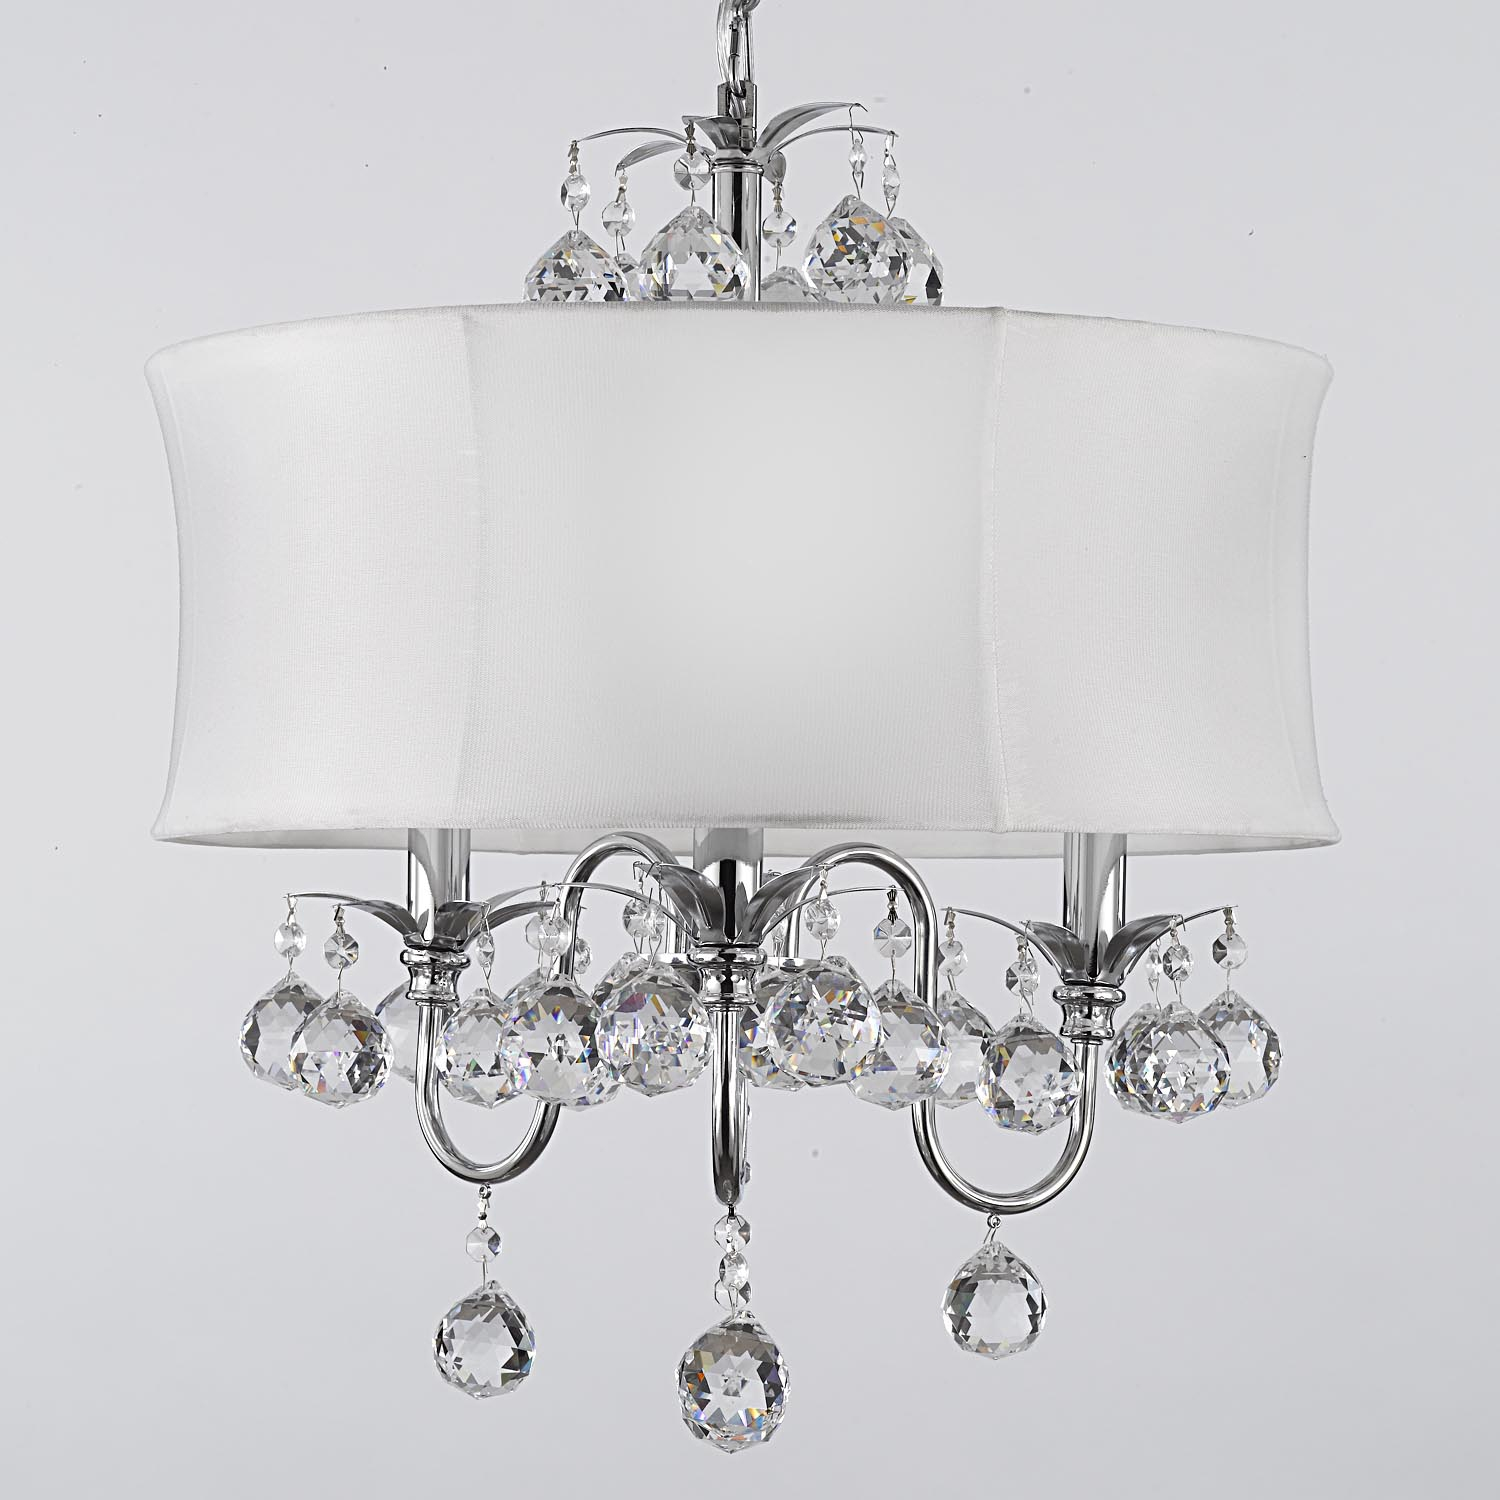 Lamps Round Modern Chandelier Bedroom Lighting Chandelier Mini Regarding Modern White Chandelier (Image 8 of 15)